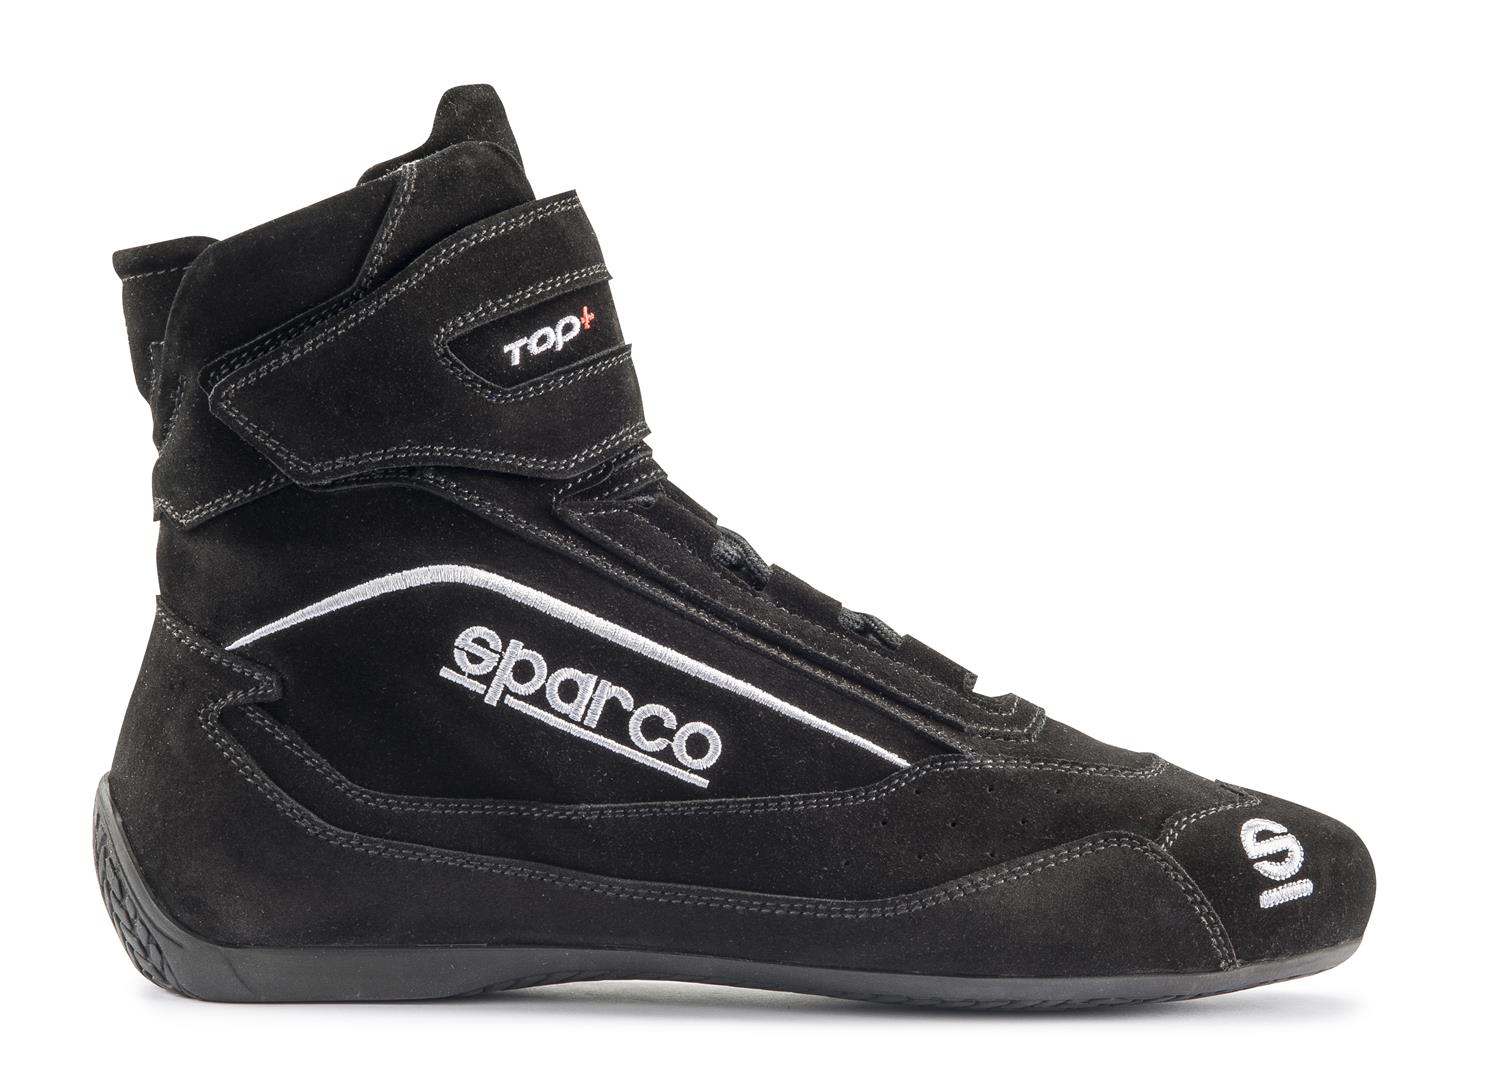 Sparco 00121047NR Black Top+ SH-5 Driving Shoes EU 47 | US 13.5